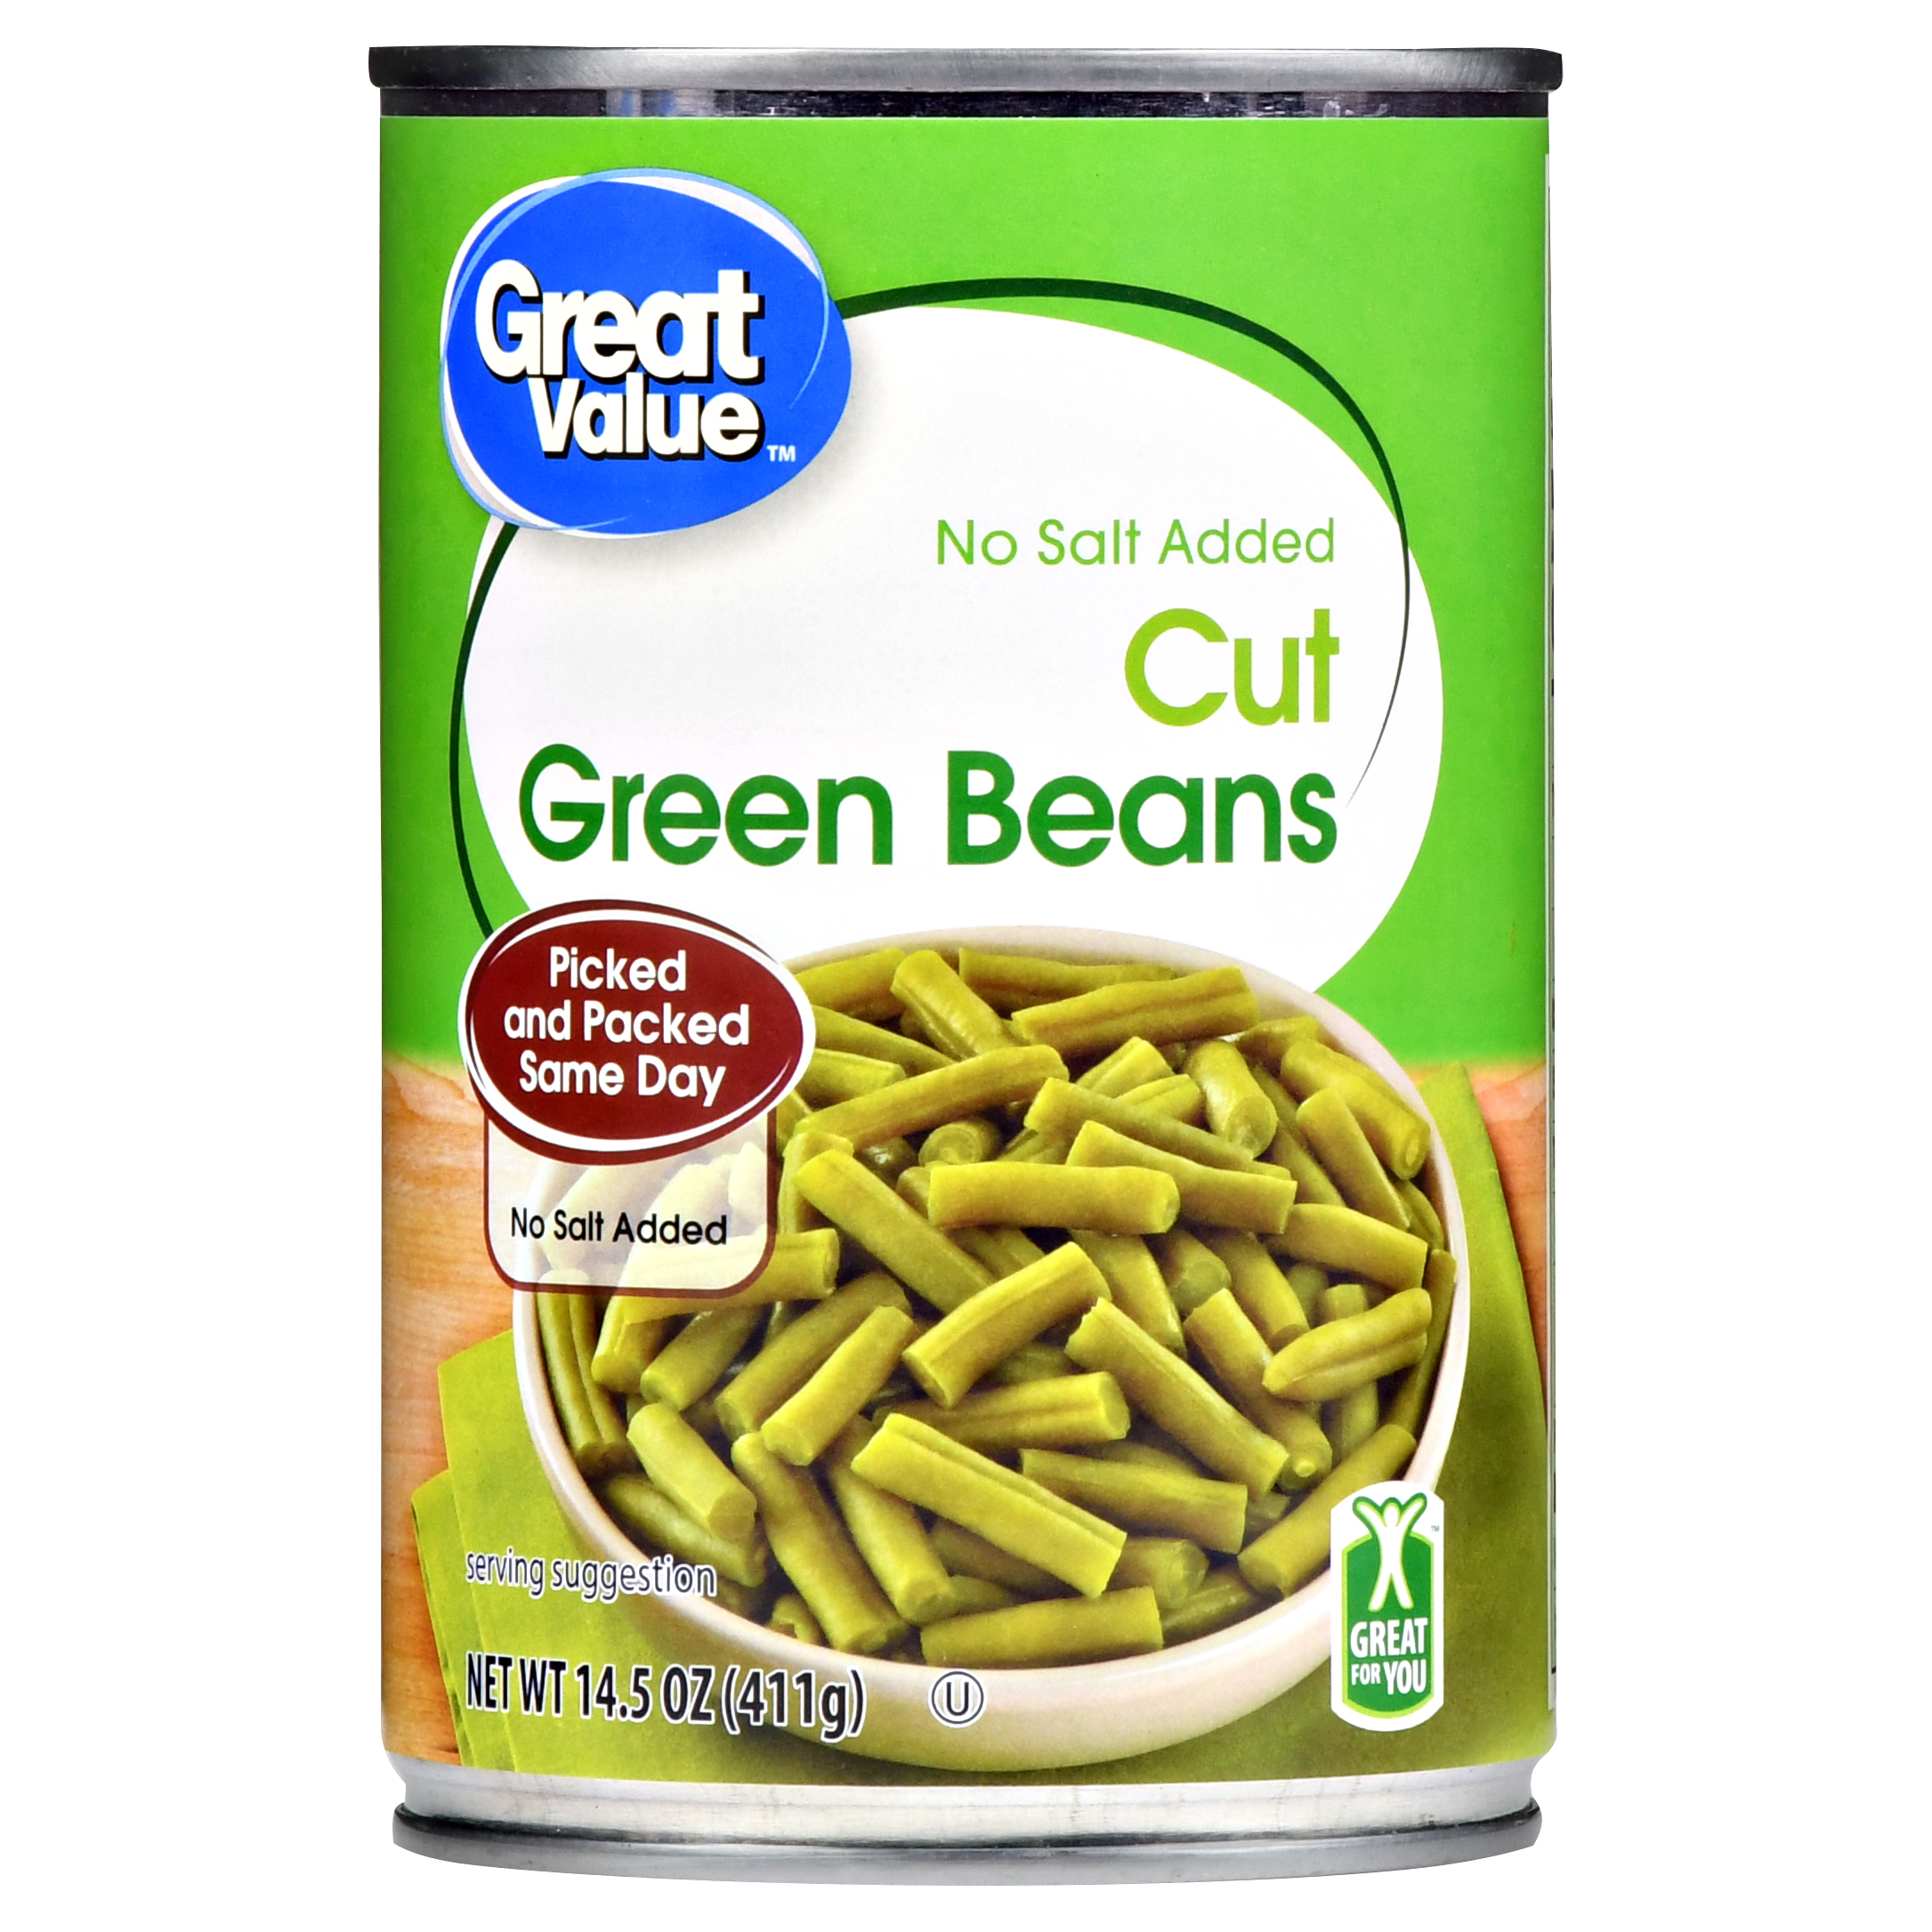 Great Value Cut Green Beans, No Salt Added, 14.5 Oz (6 Packs)